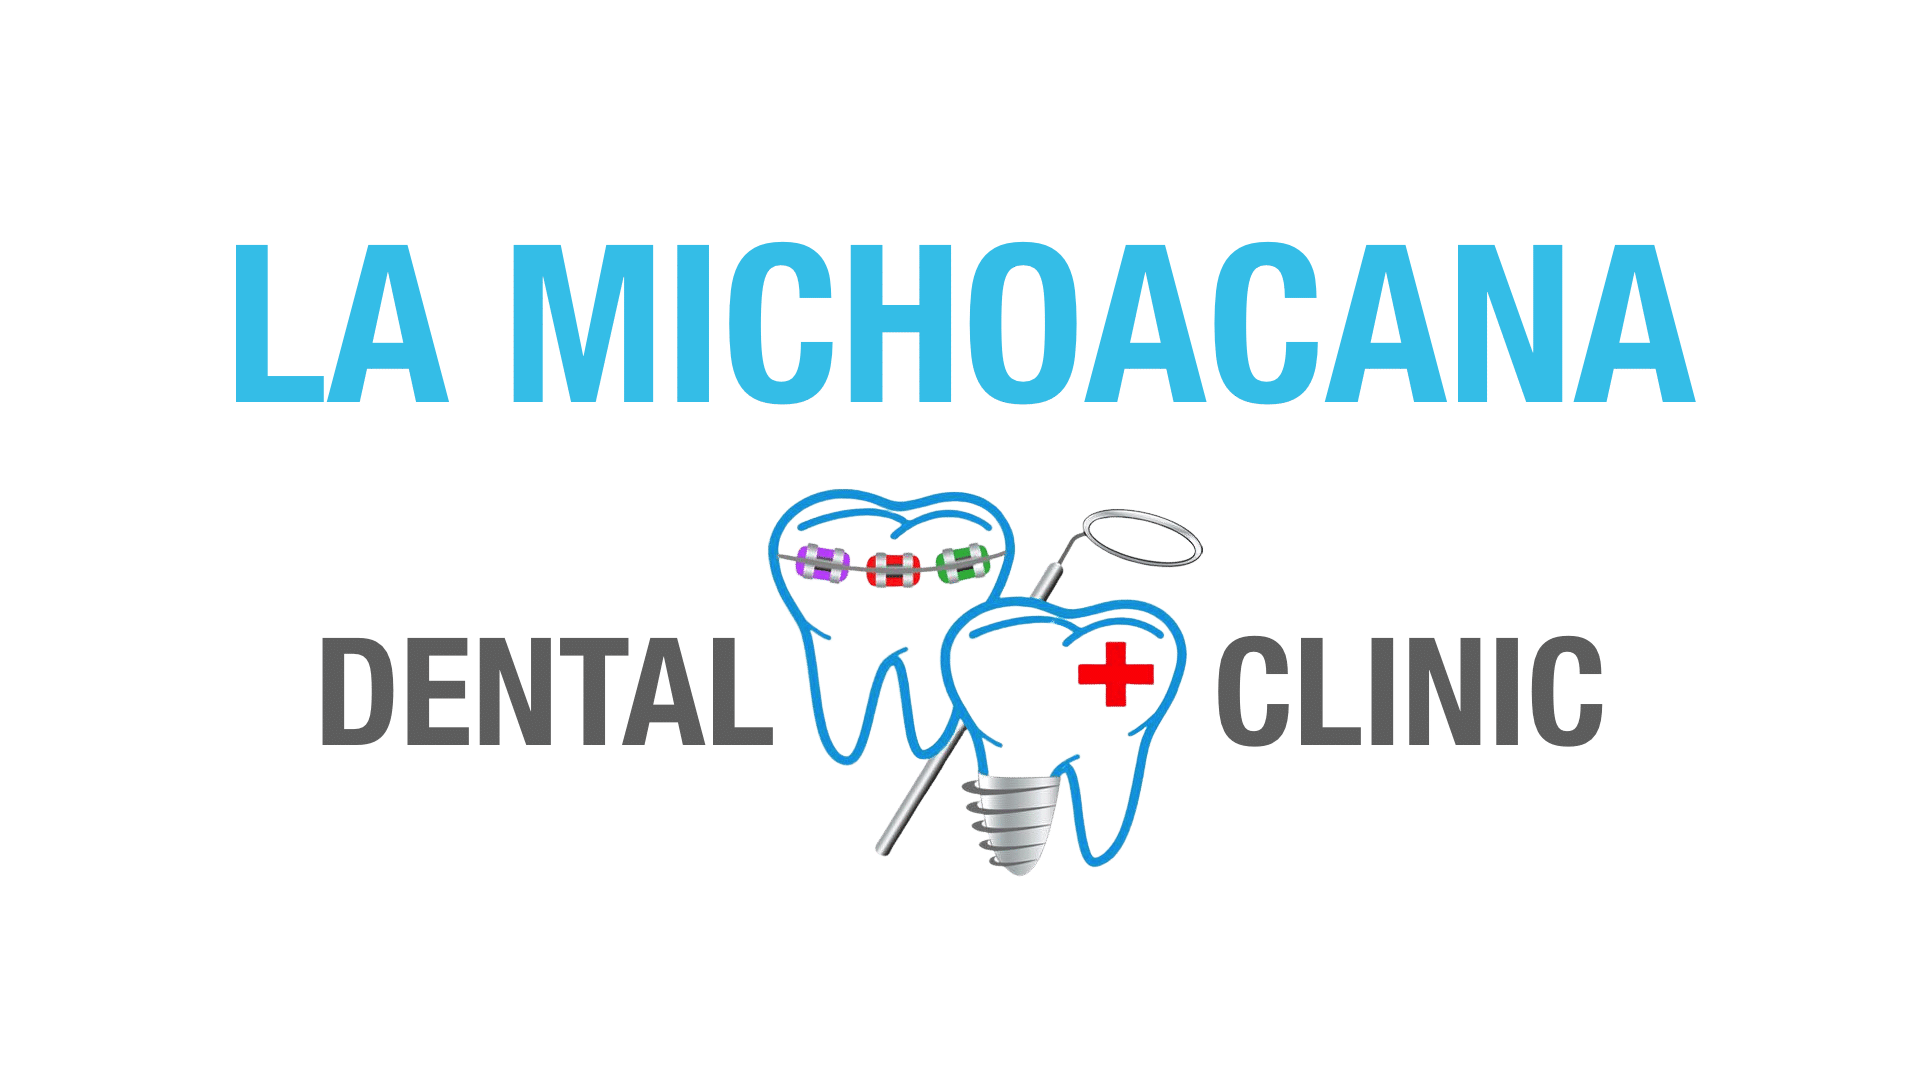 La Michoacana Dental Clinic